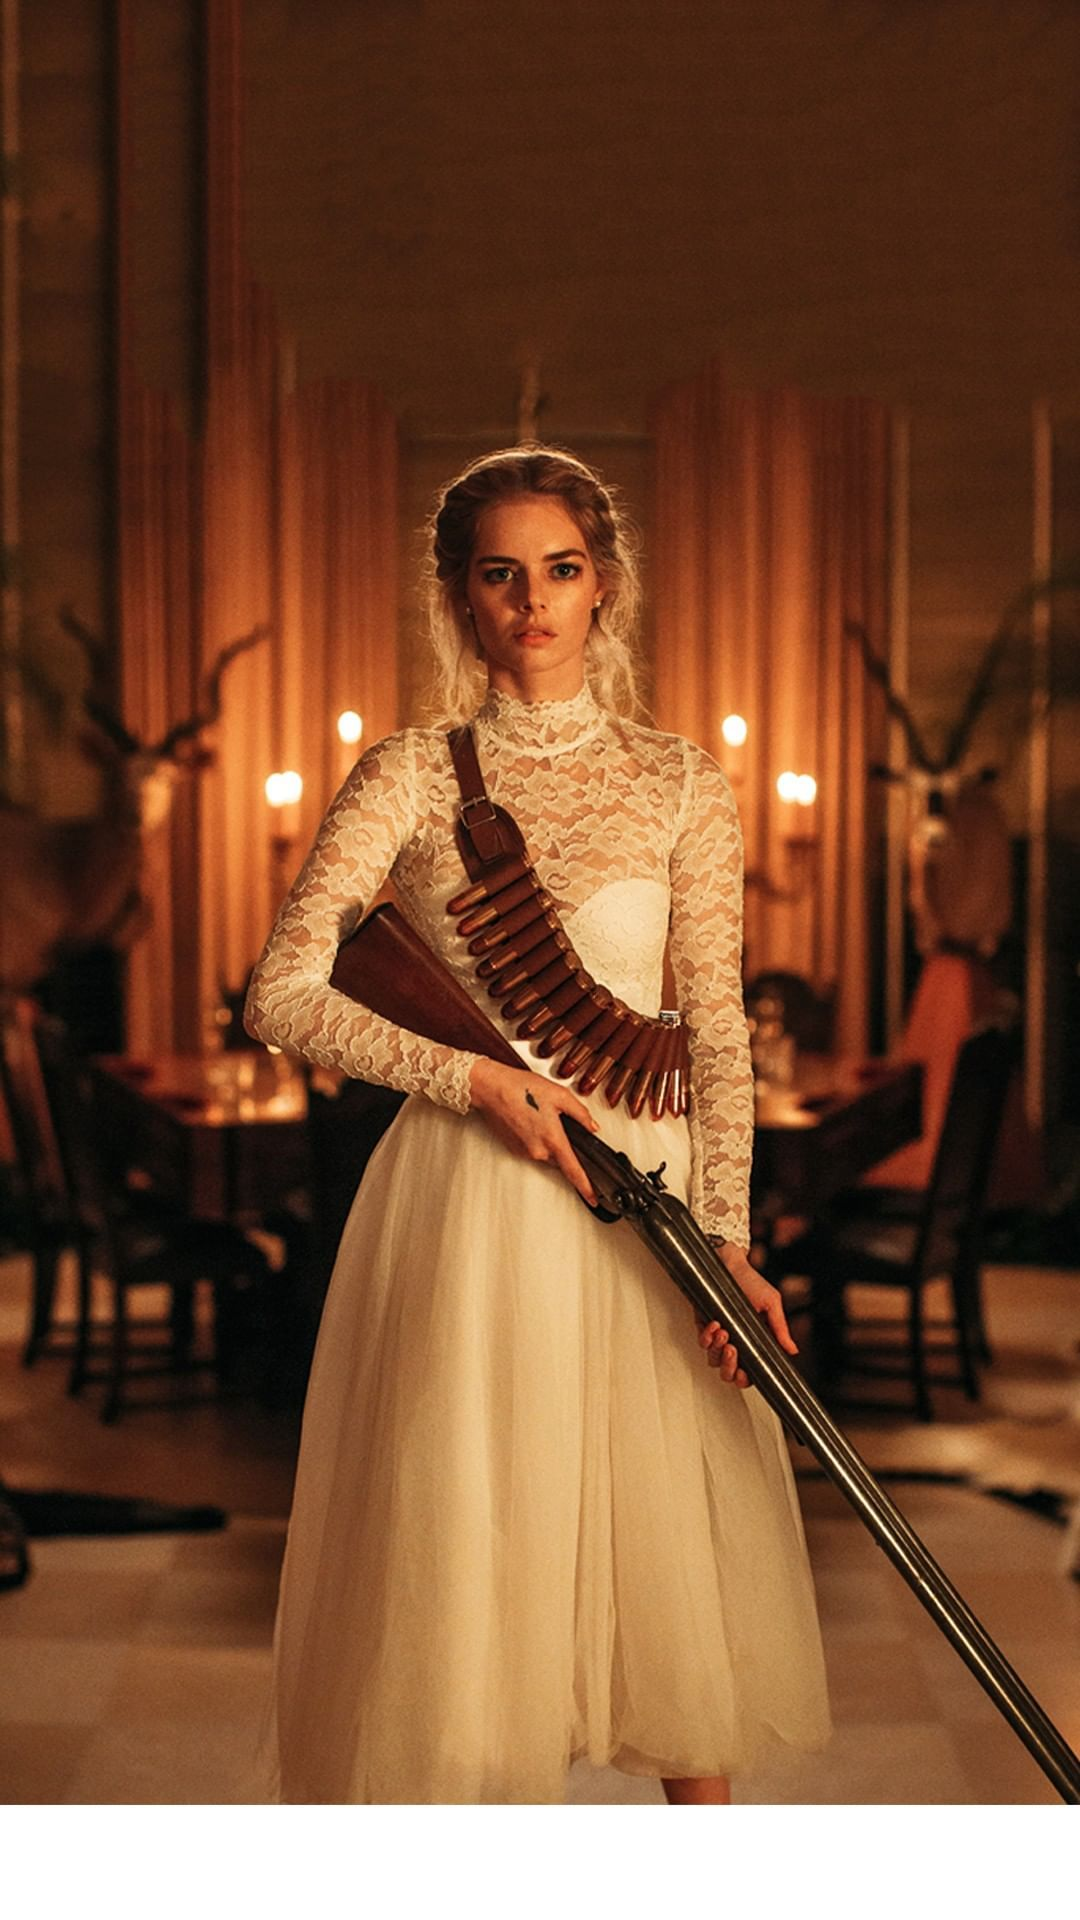 Insider On Instagram In Ready Or Not Samara Weaving Plays A Young Bride Who Is Forced Iconic Movie Characters Horror Movie Scenes Movie Character Costumes